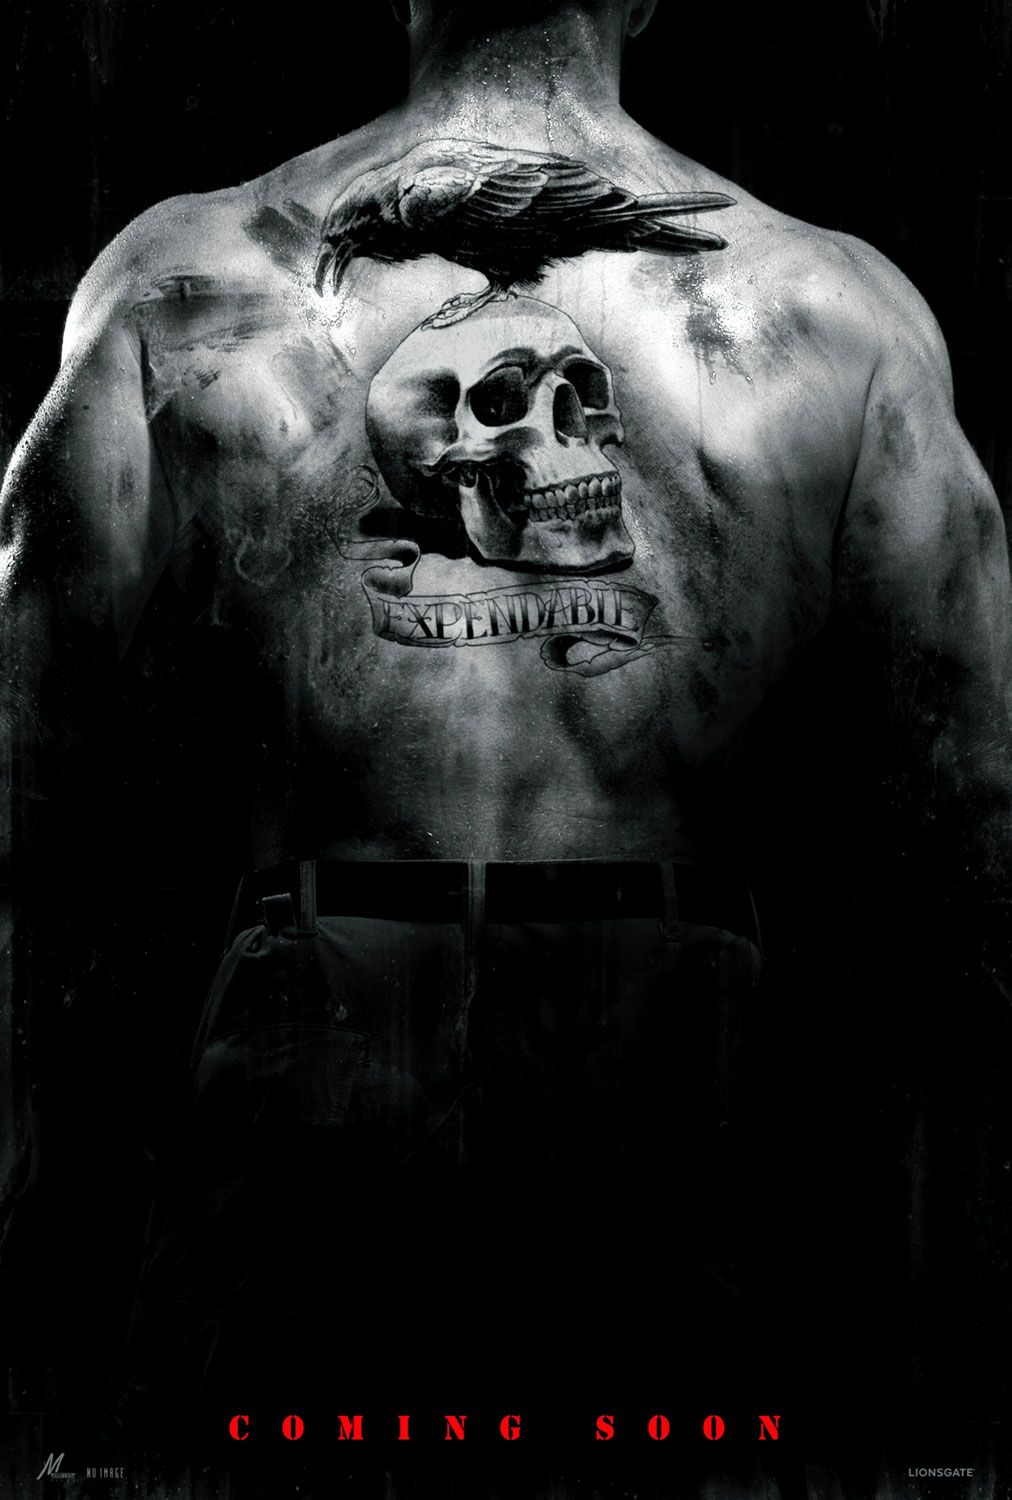 Now Playing The Expendables 2010 The Expendables Best Movie Posters Expendables Tattoo